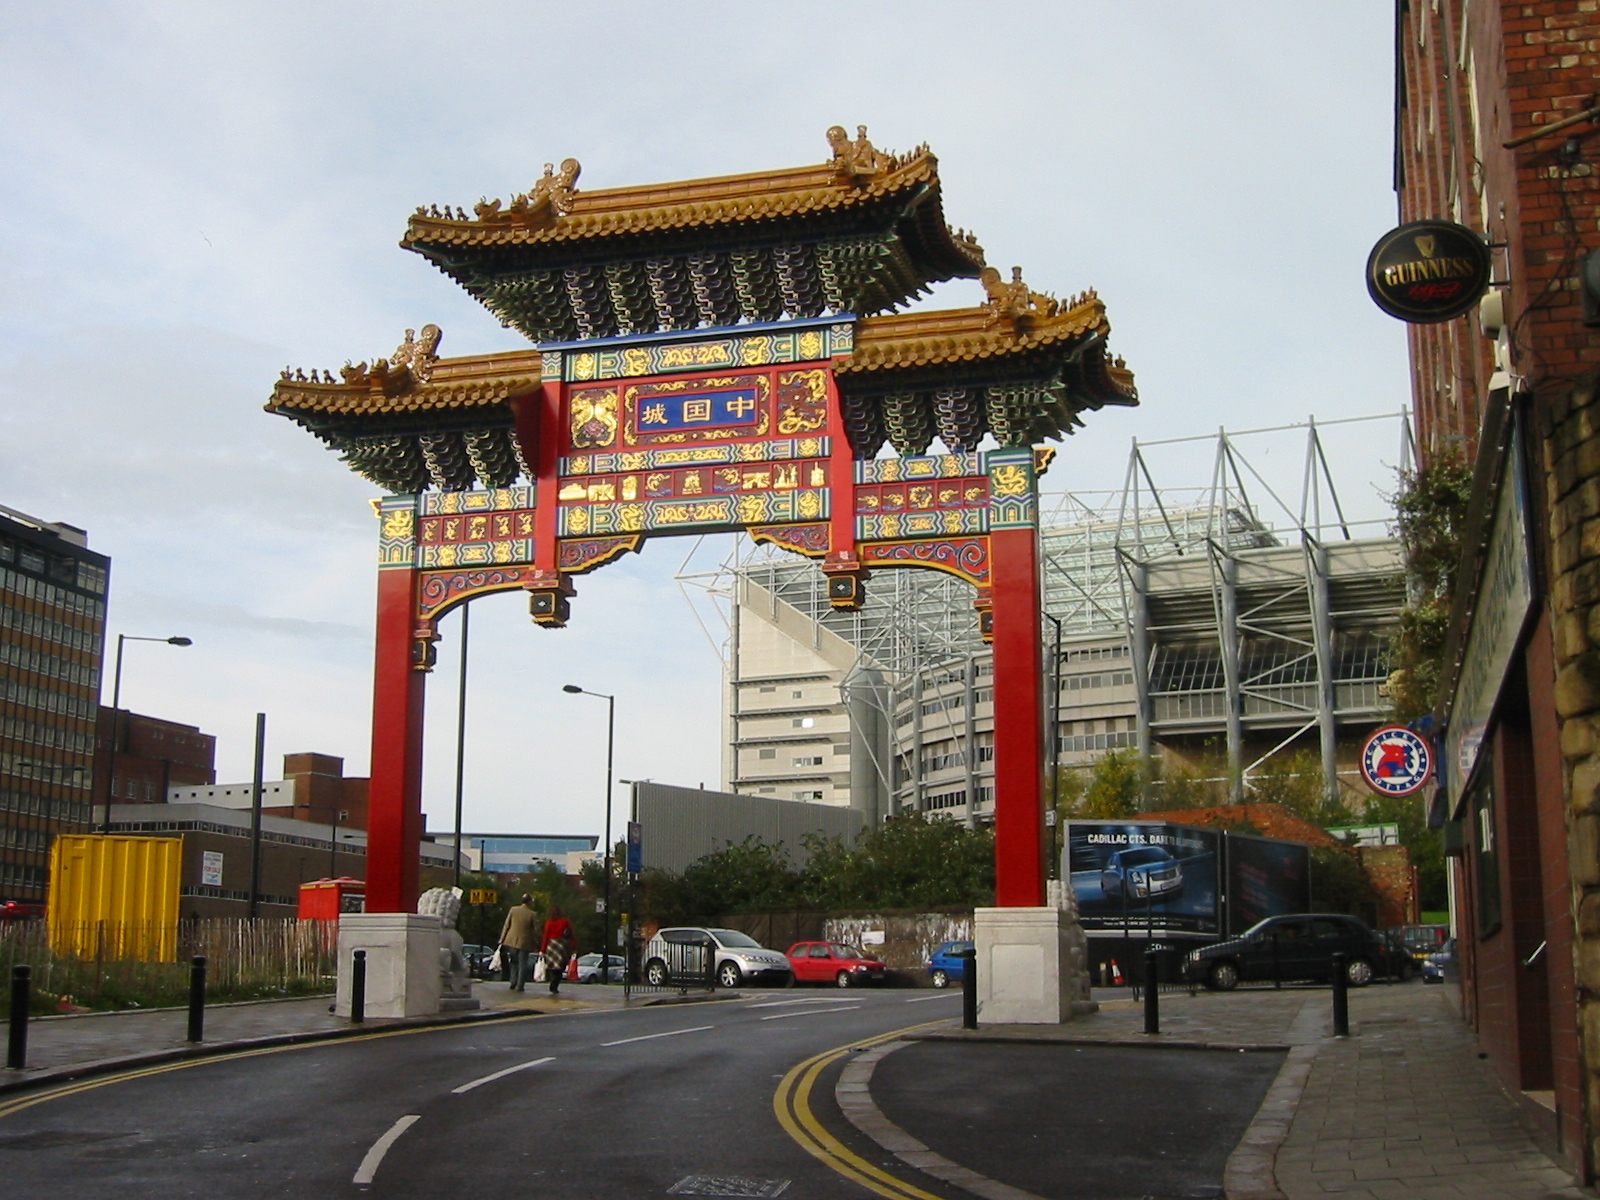 File:Chinatown Arch Newcastle UK.jpg - Wikimedia Commons